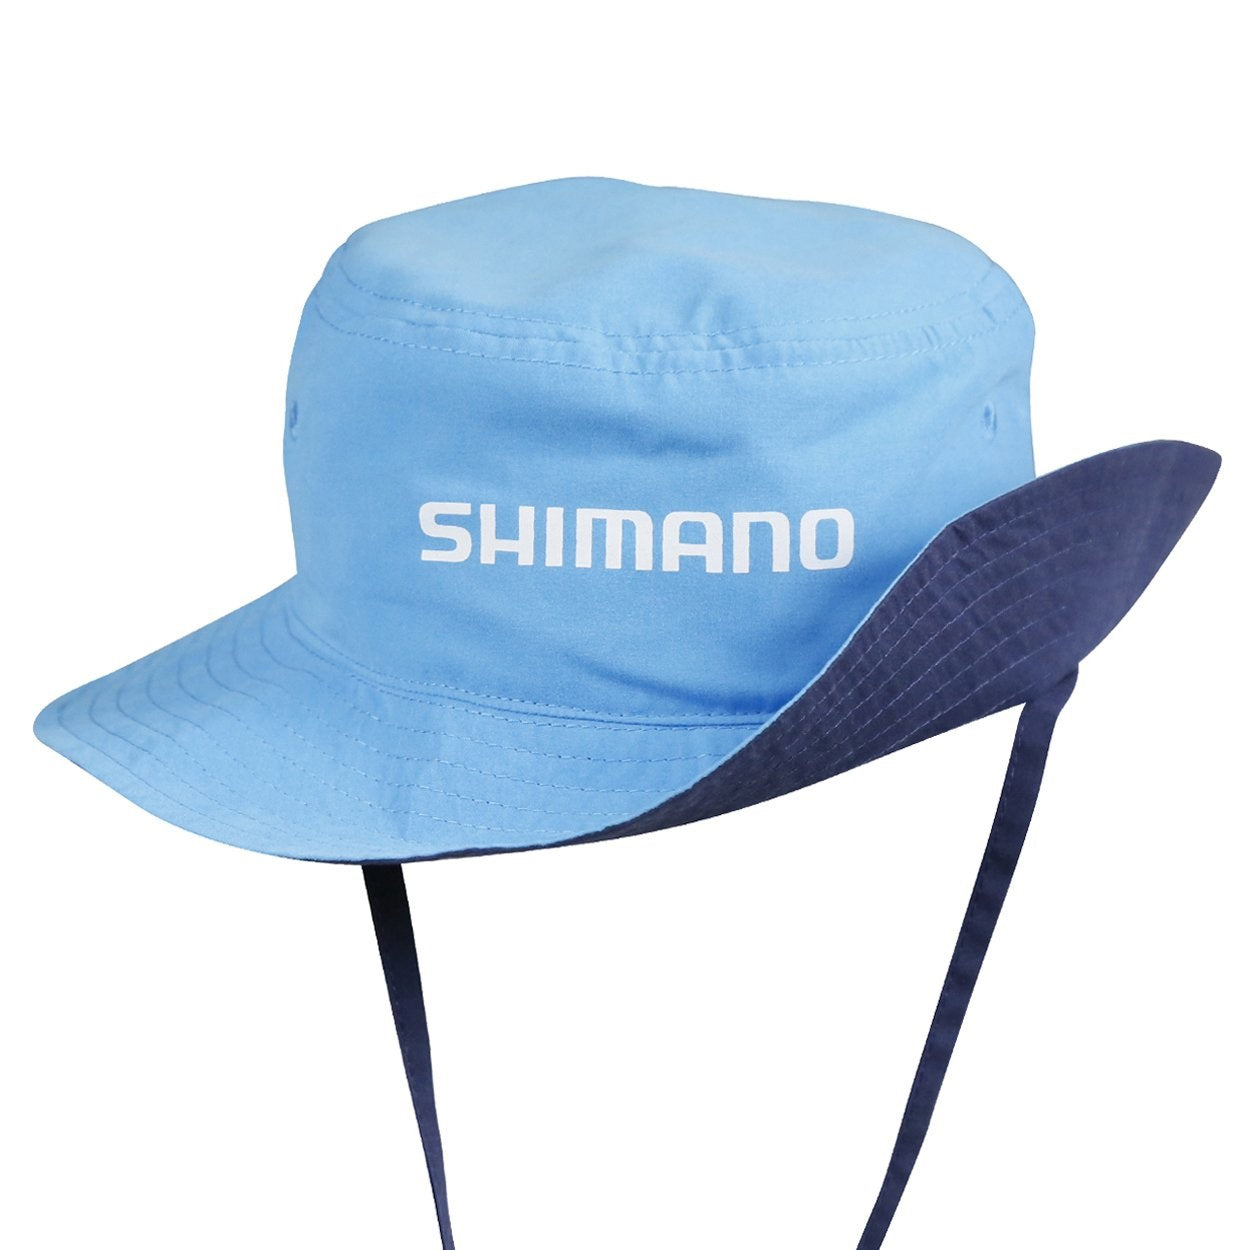 Shimano Kids Reversible Bucket Hat - Navy Cyan